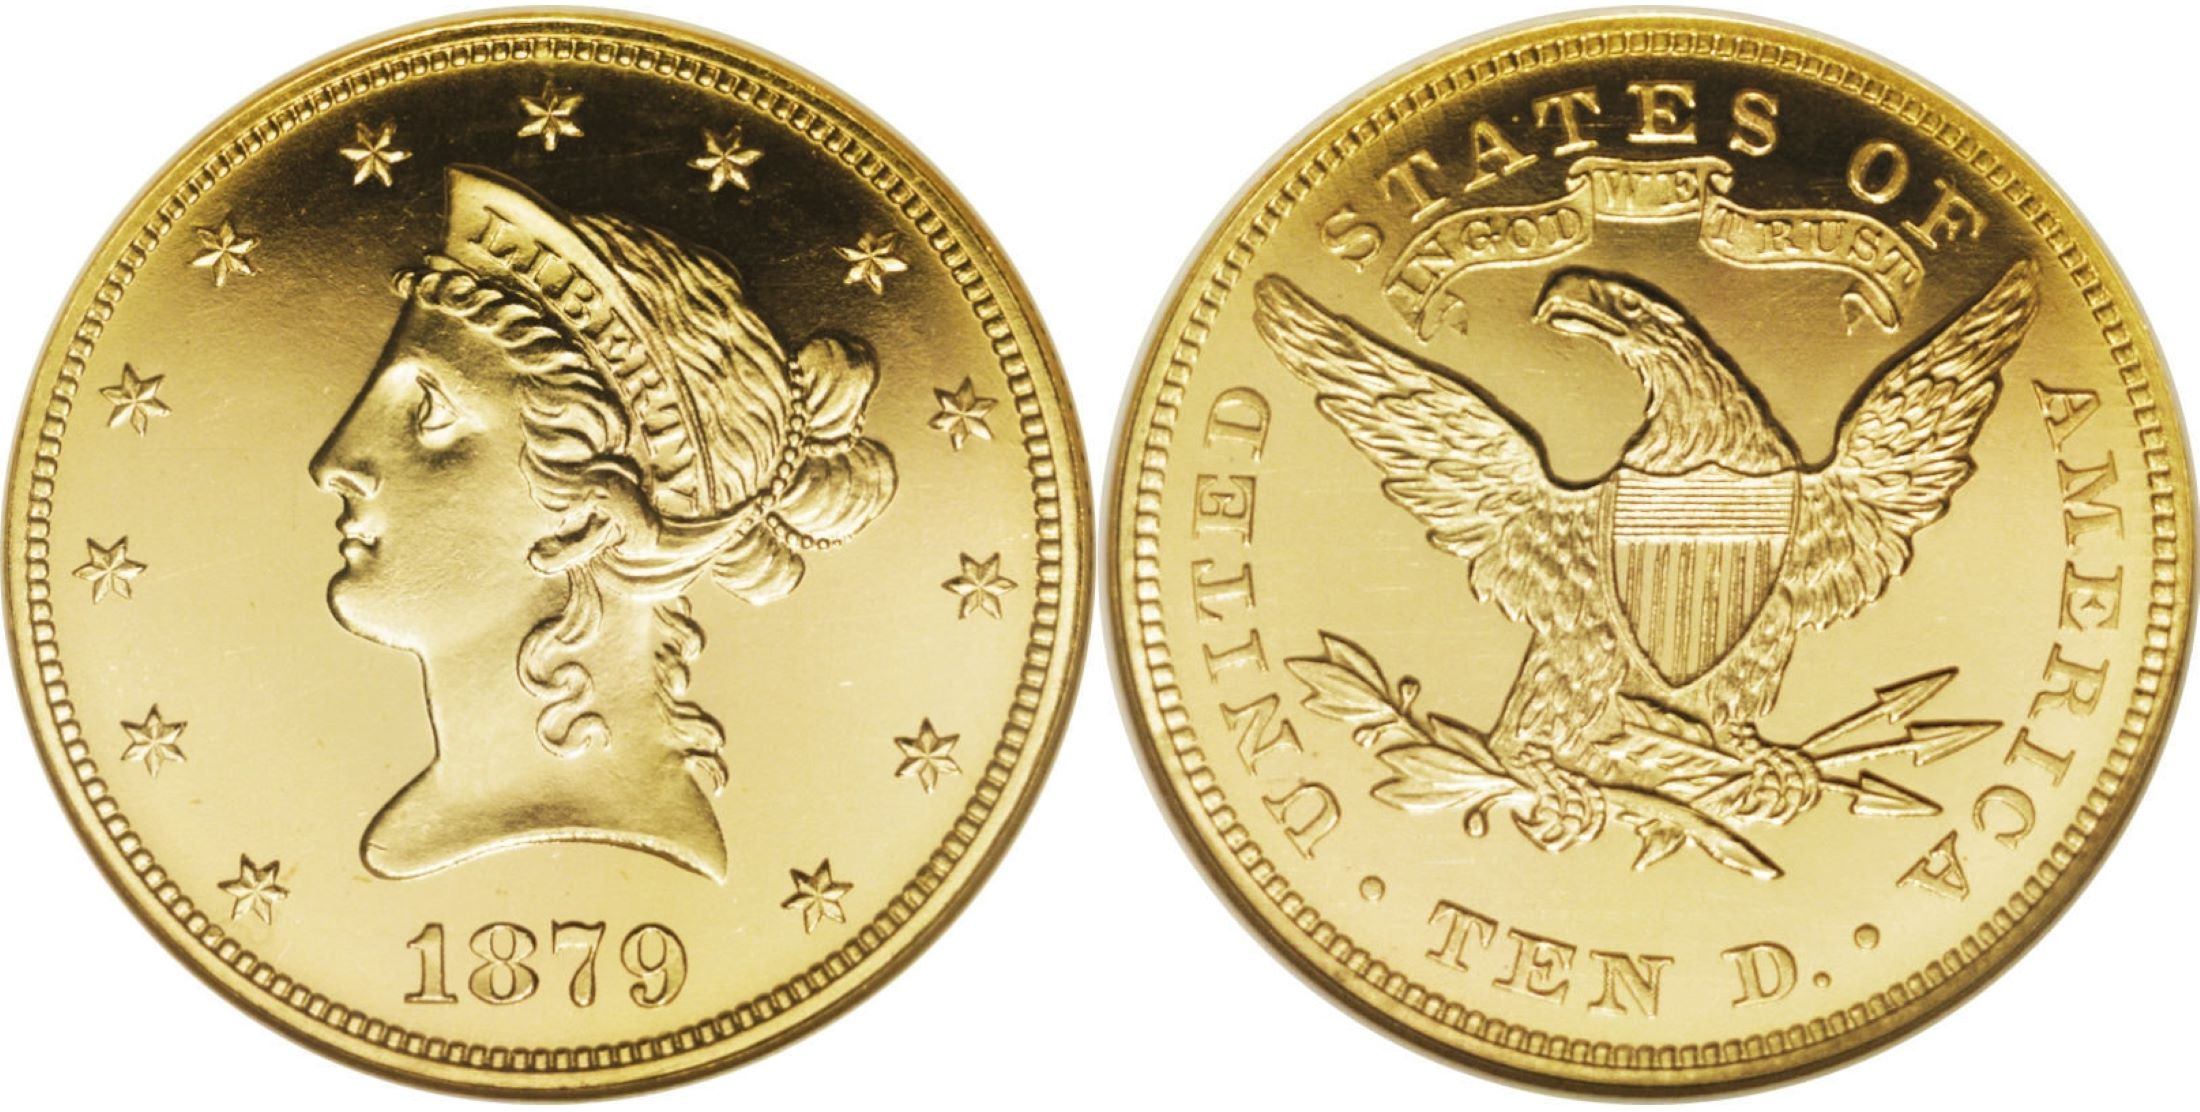 """PR64CAM estimated garde<BR>Image courtesy of <a href=""""http://www.ha.com"""" target=""""_blank"""">Heritage Numismatic Auctions</a>"""